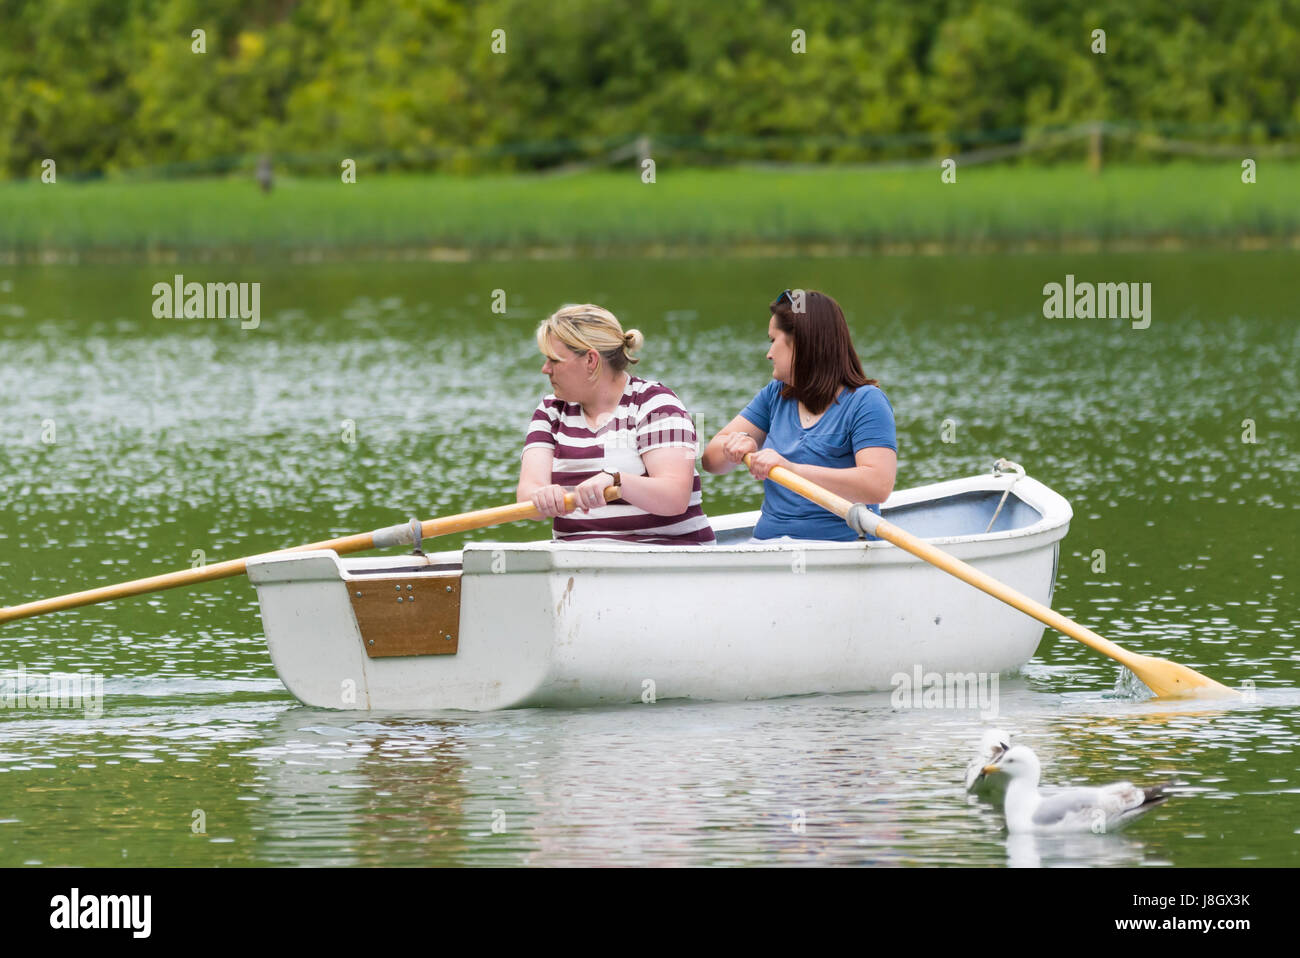 Female friends in a small wooden rowing boat on a boating lake in Spring. - Stock Image